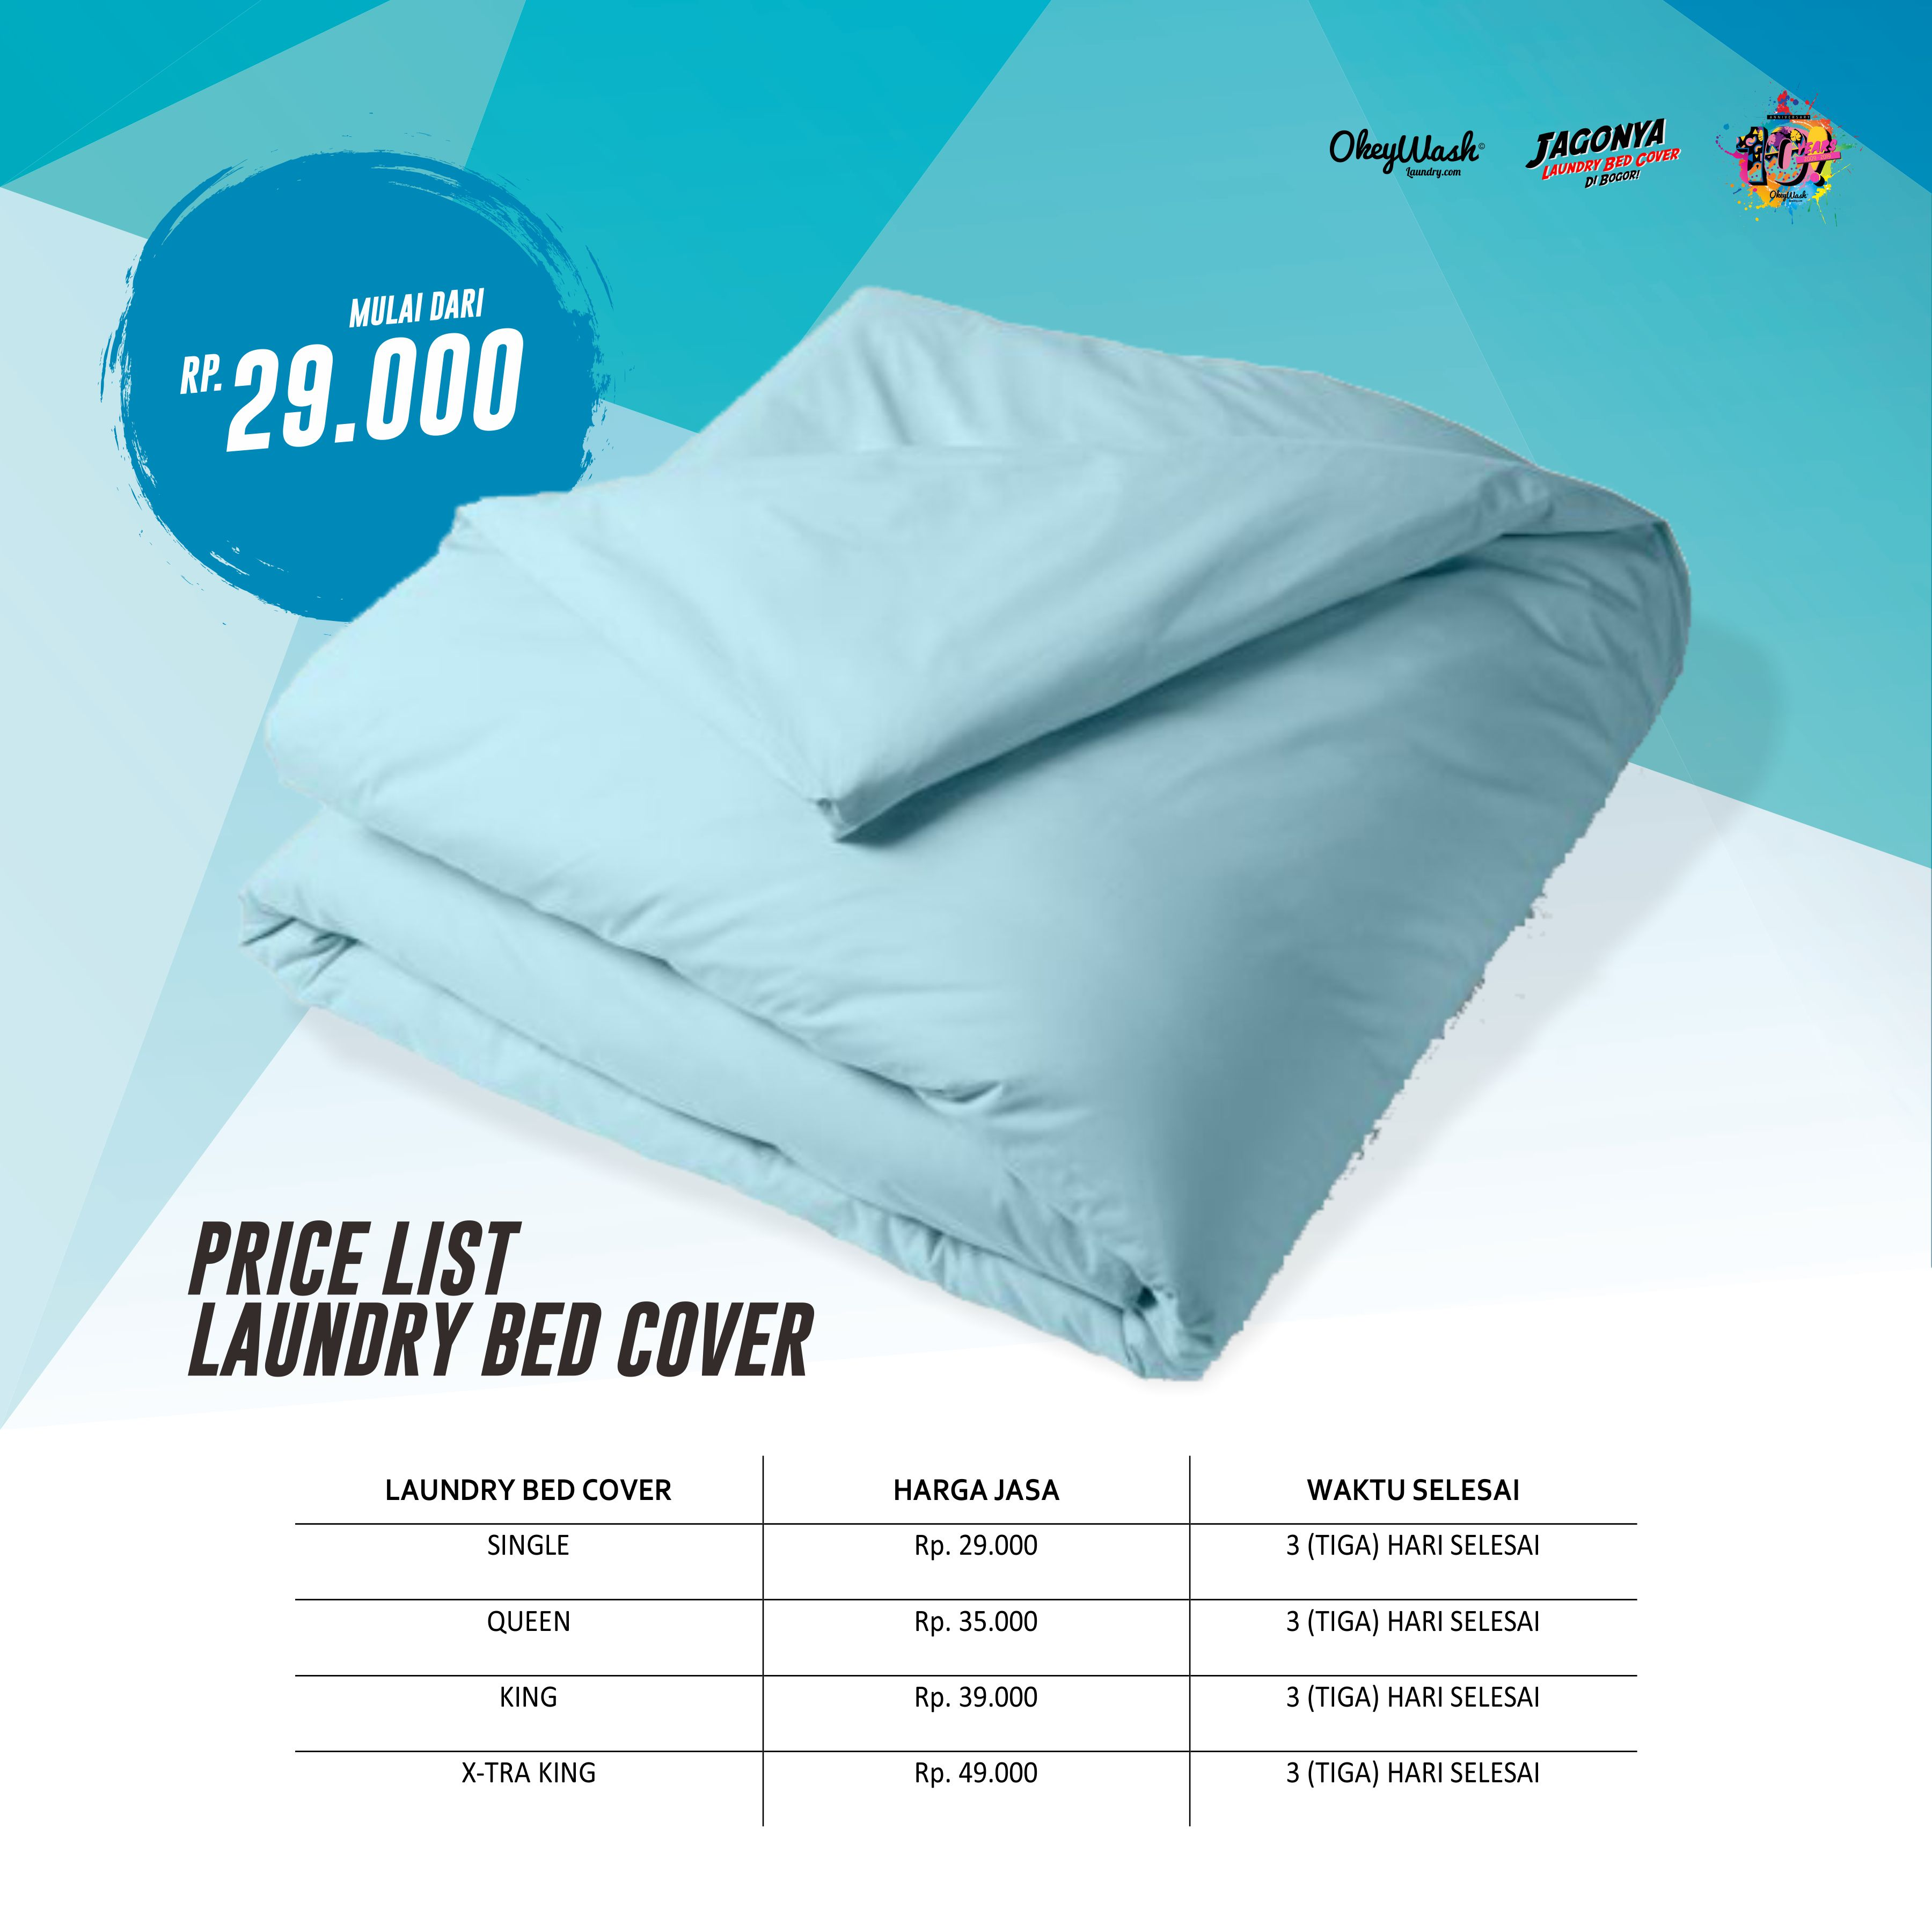 Price List Okey Wash Laundry 2019 - Laundry Bed Cover